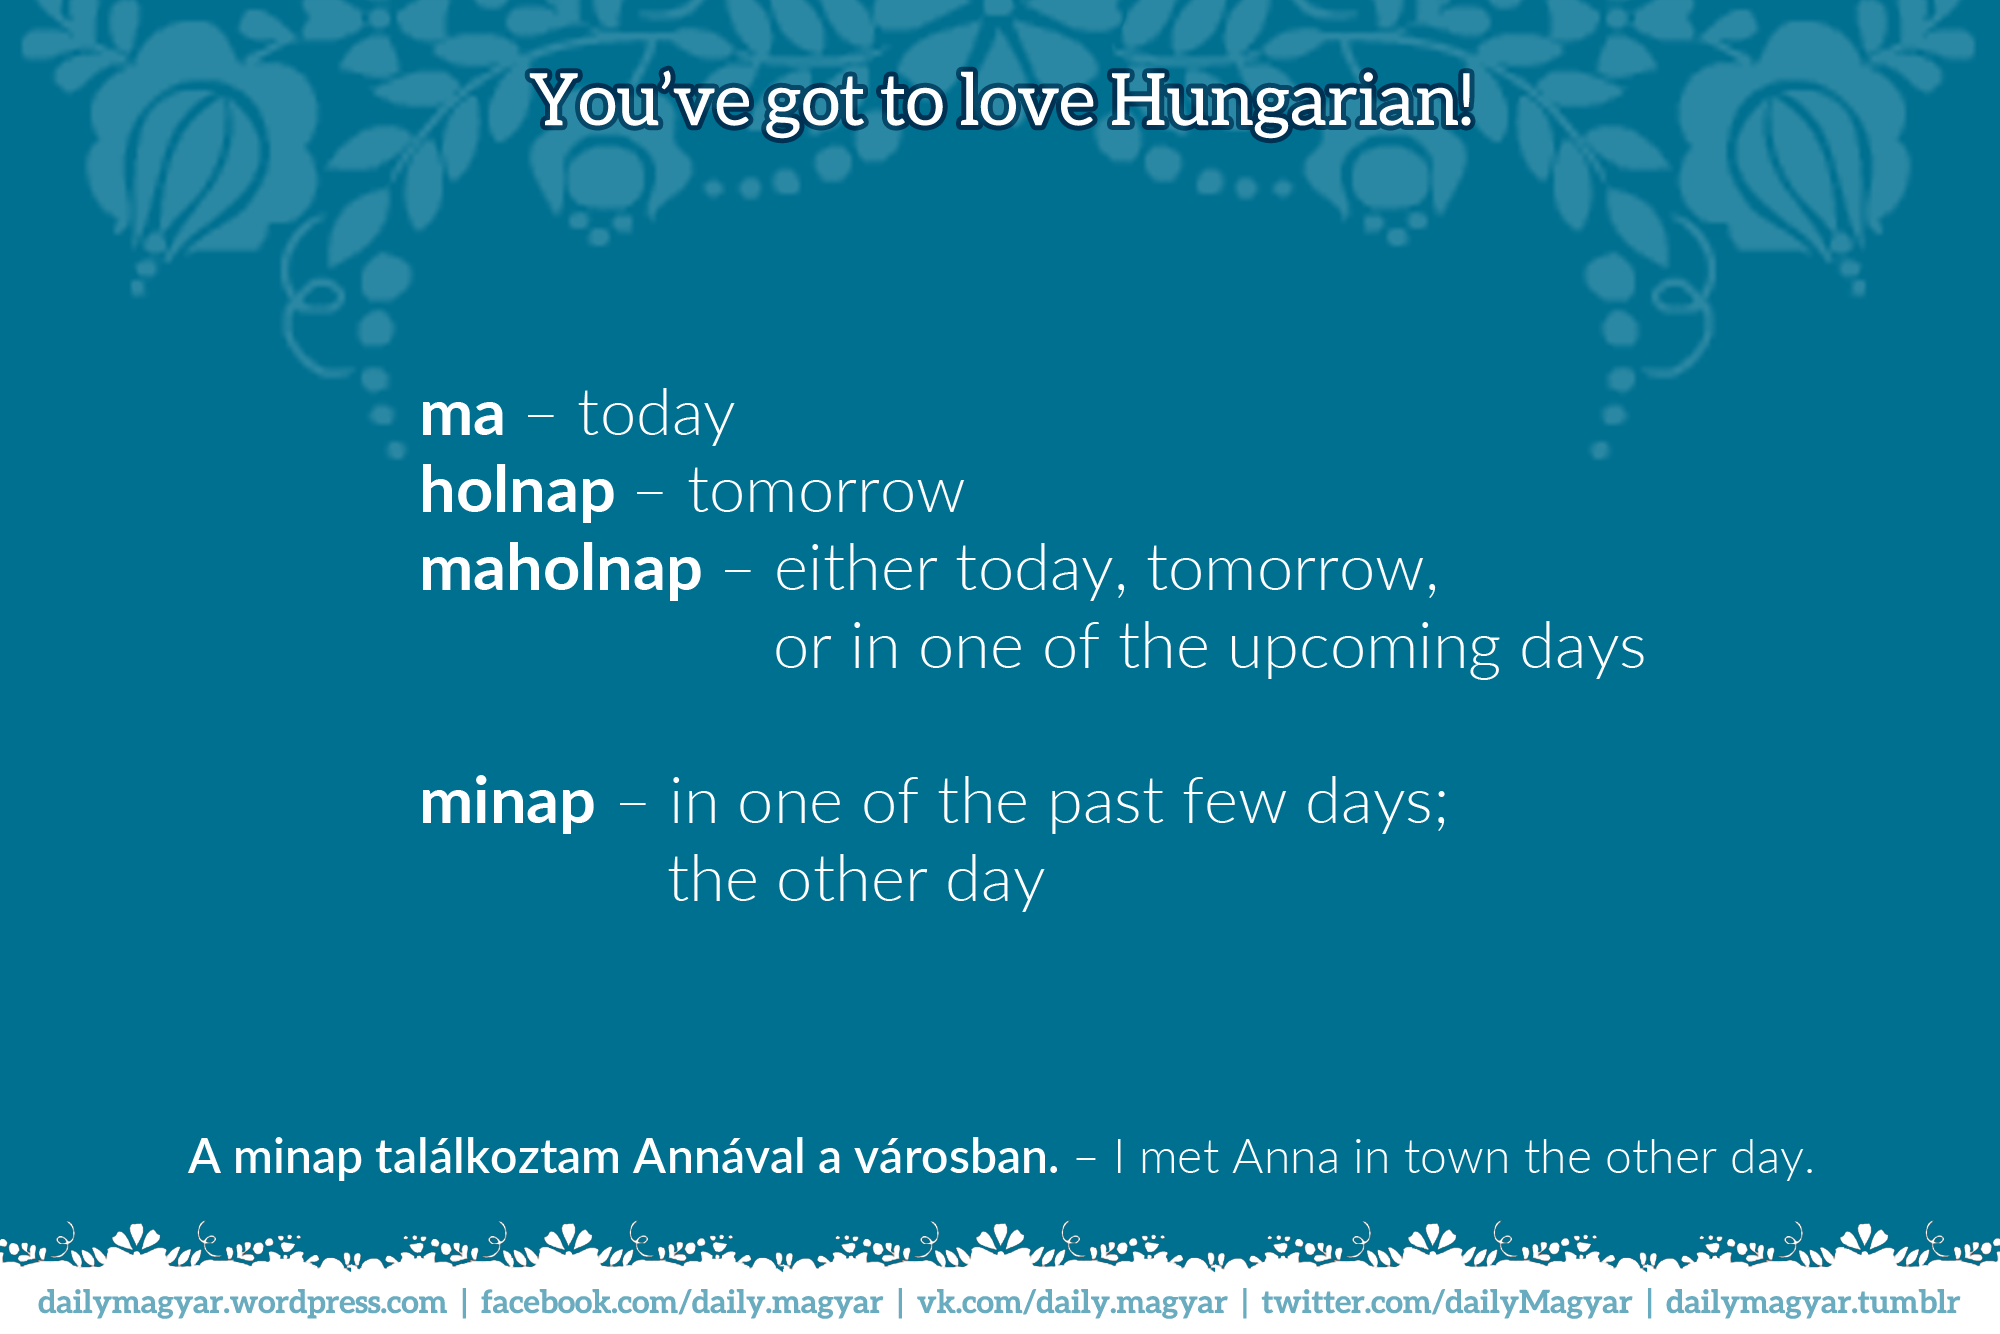 maholnap – either today, tomorrow, or in one of the upcoming days | minap – in one of the past few days; the other day  https://dailymagyar.wordpress.com/2014/05/26/youve-got-to-love-hungarian-d-19/